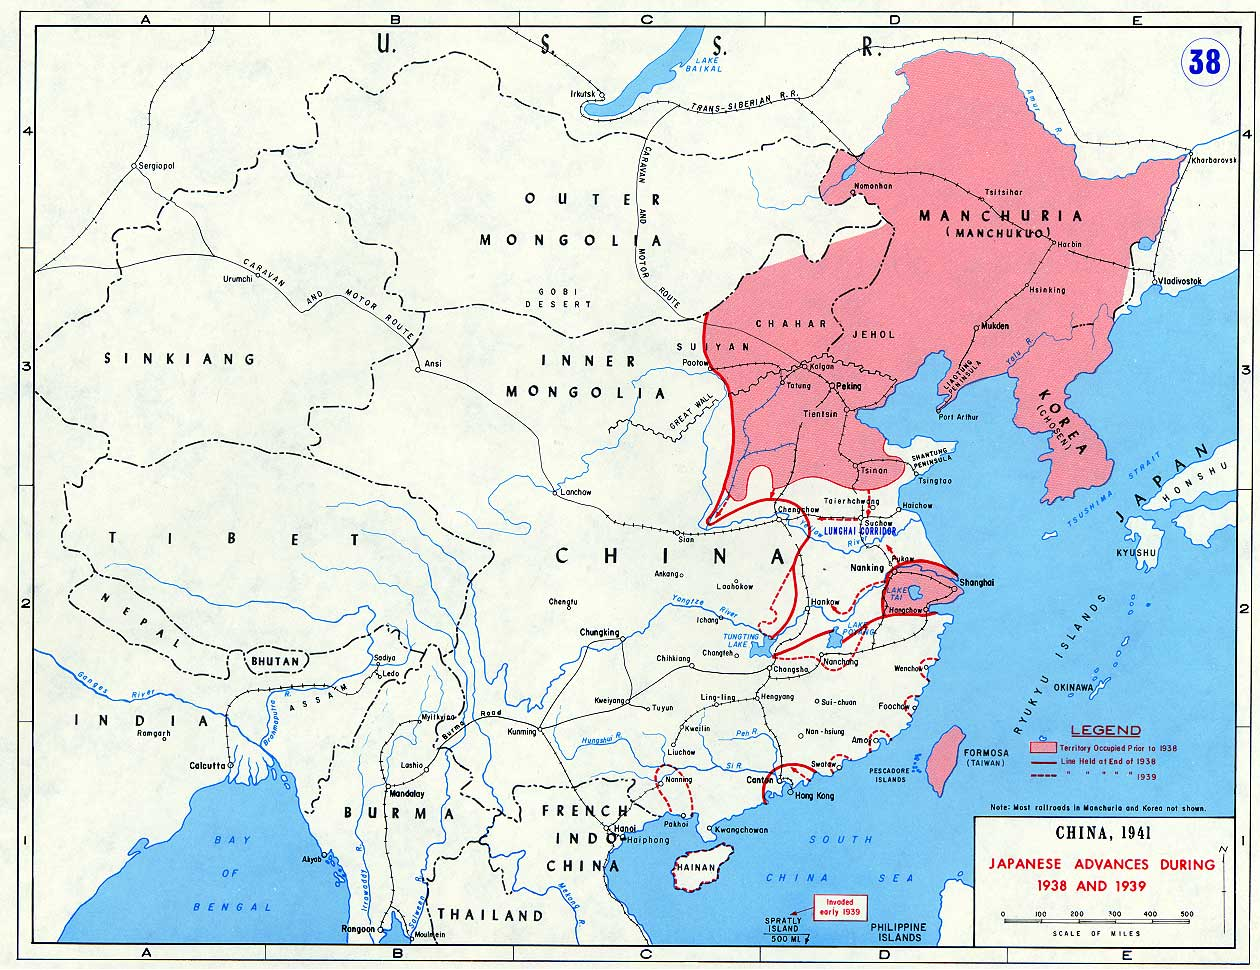 Image Ww2 asia map 38jpg Axis Allies Wiki – Full Asia Map